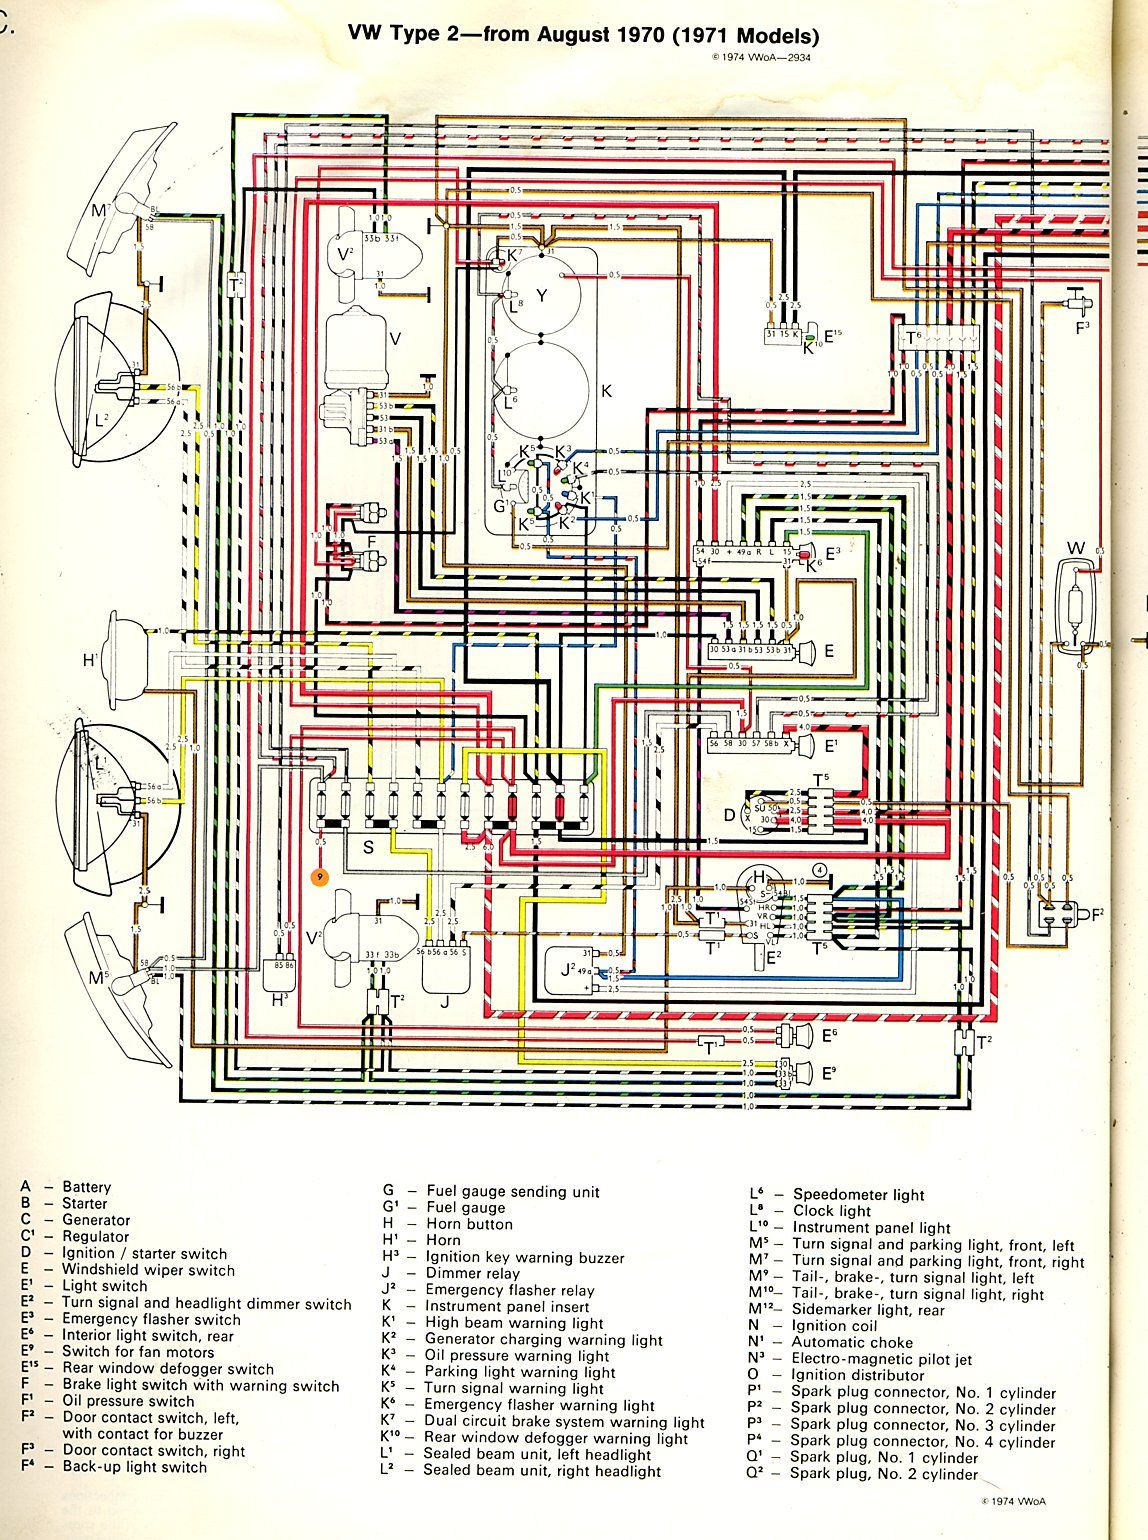 1971 bus wiring diagram | thegoldenbug.com | stuff to try ... 74 vw bus wiring diagram relays vw bus wiring diagrams